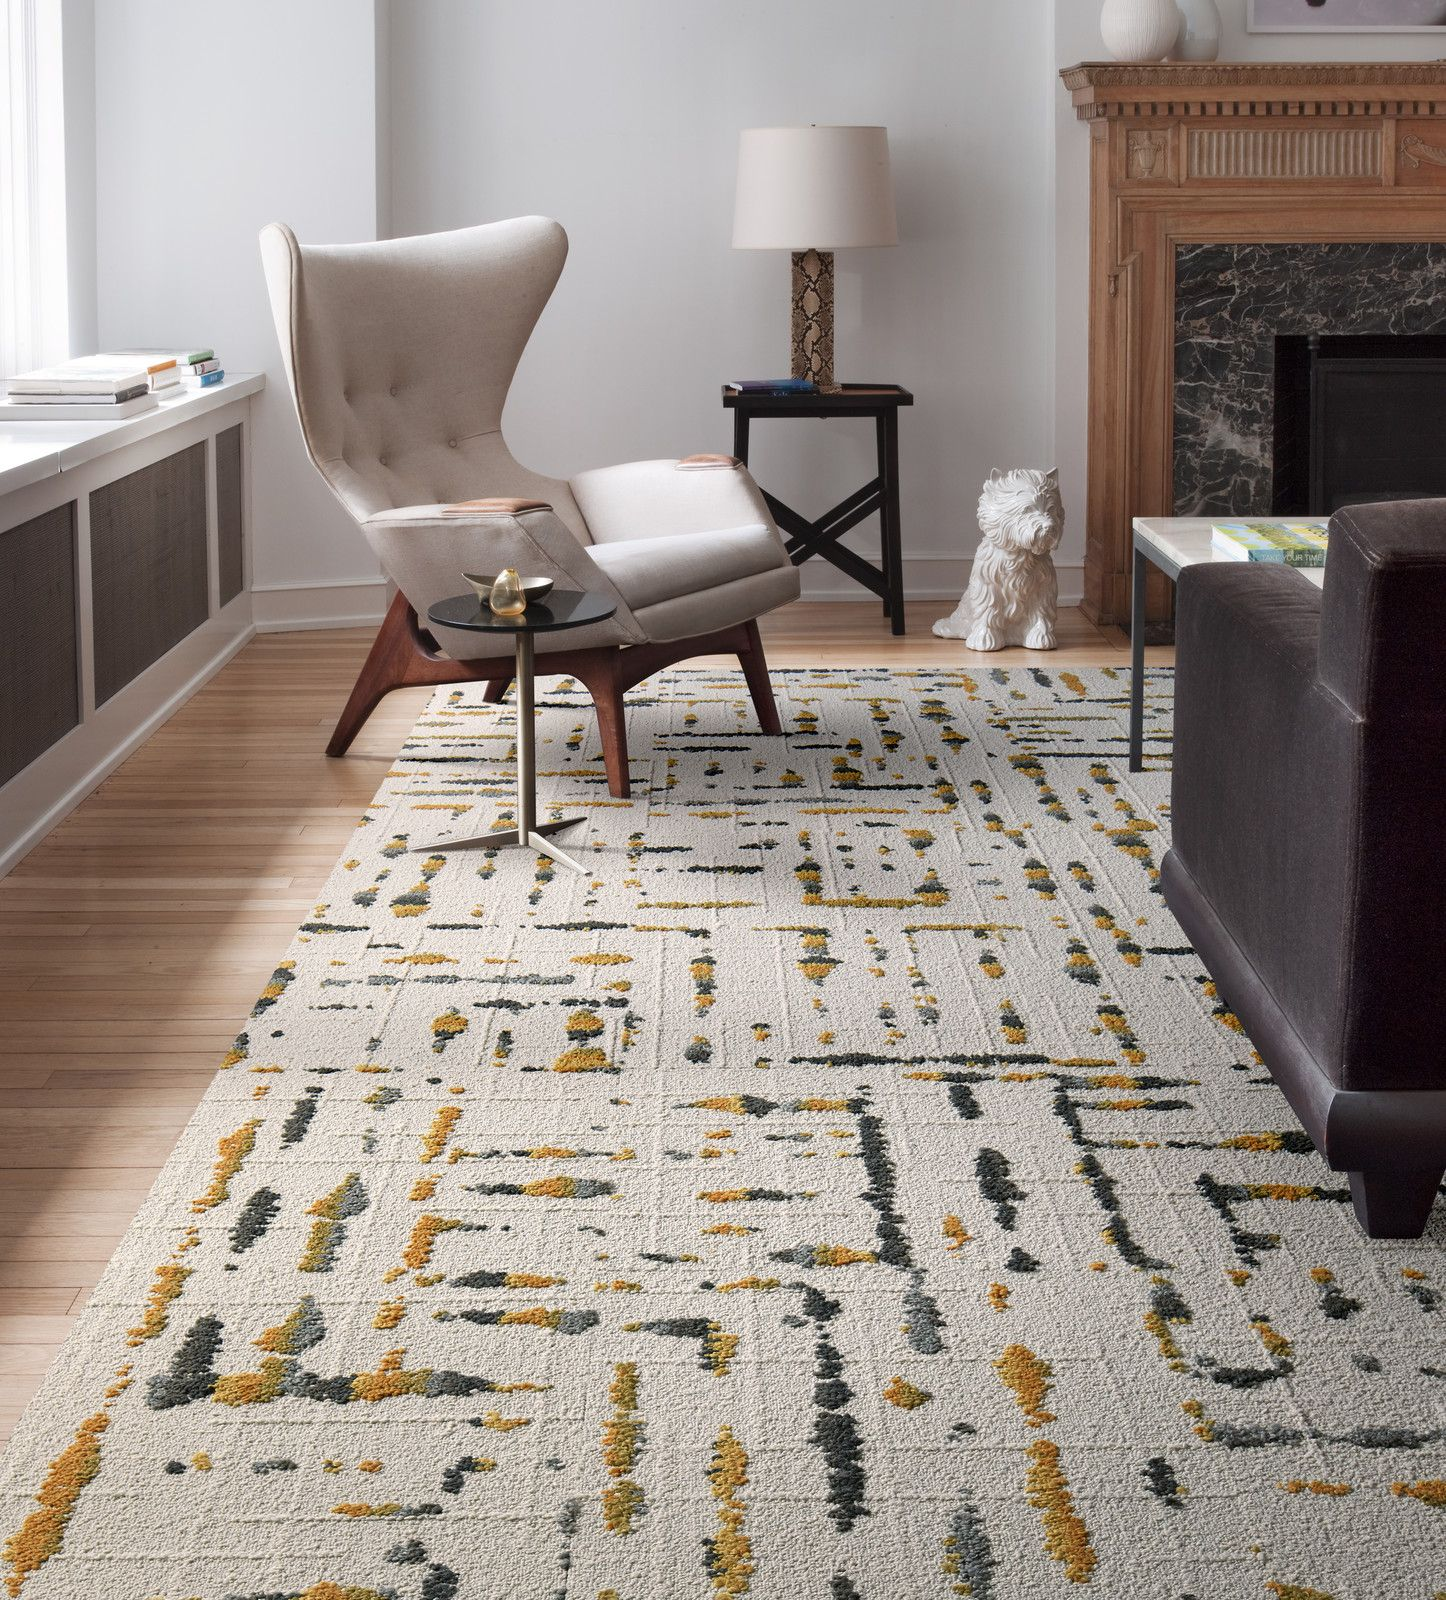 Mix And Match The New FLOR Rug Styles To Your Heart's